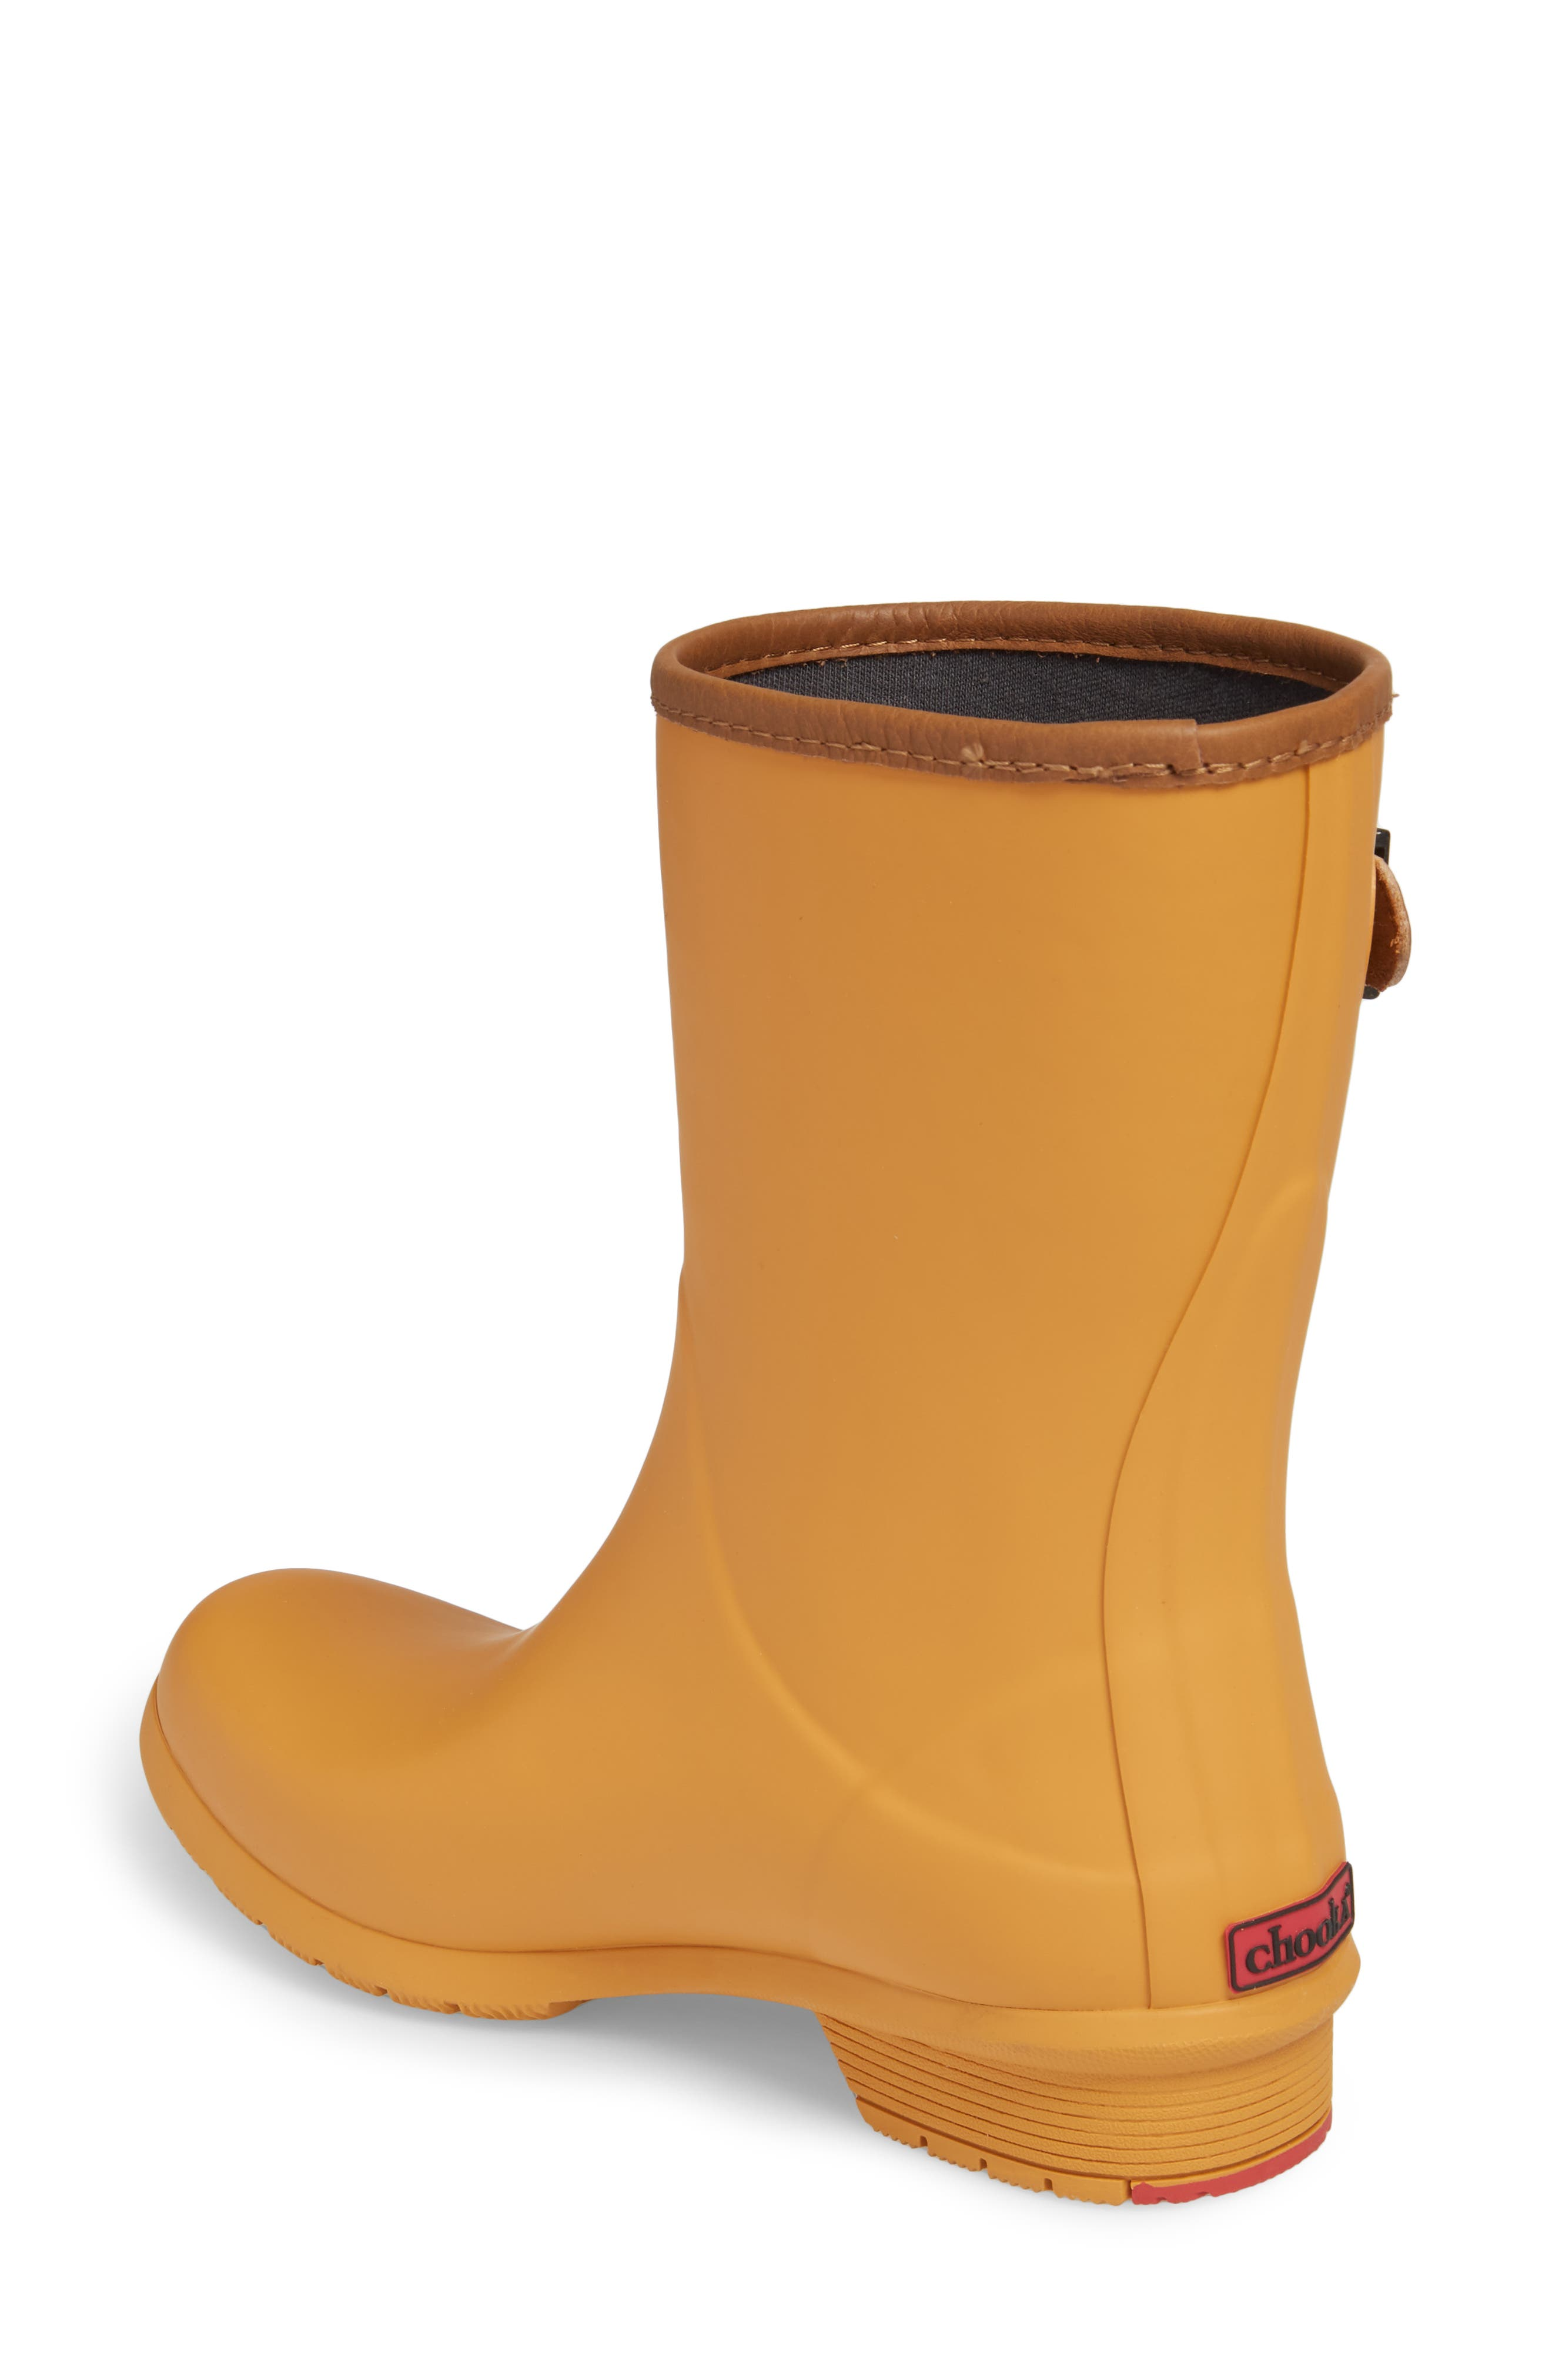 City Solid Mid Height Rain Boot,                             Alternate thumbnail 2, color,                             Saffron